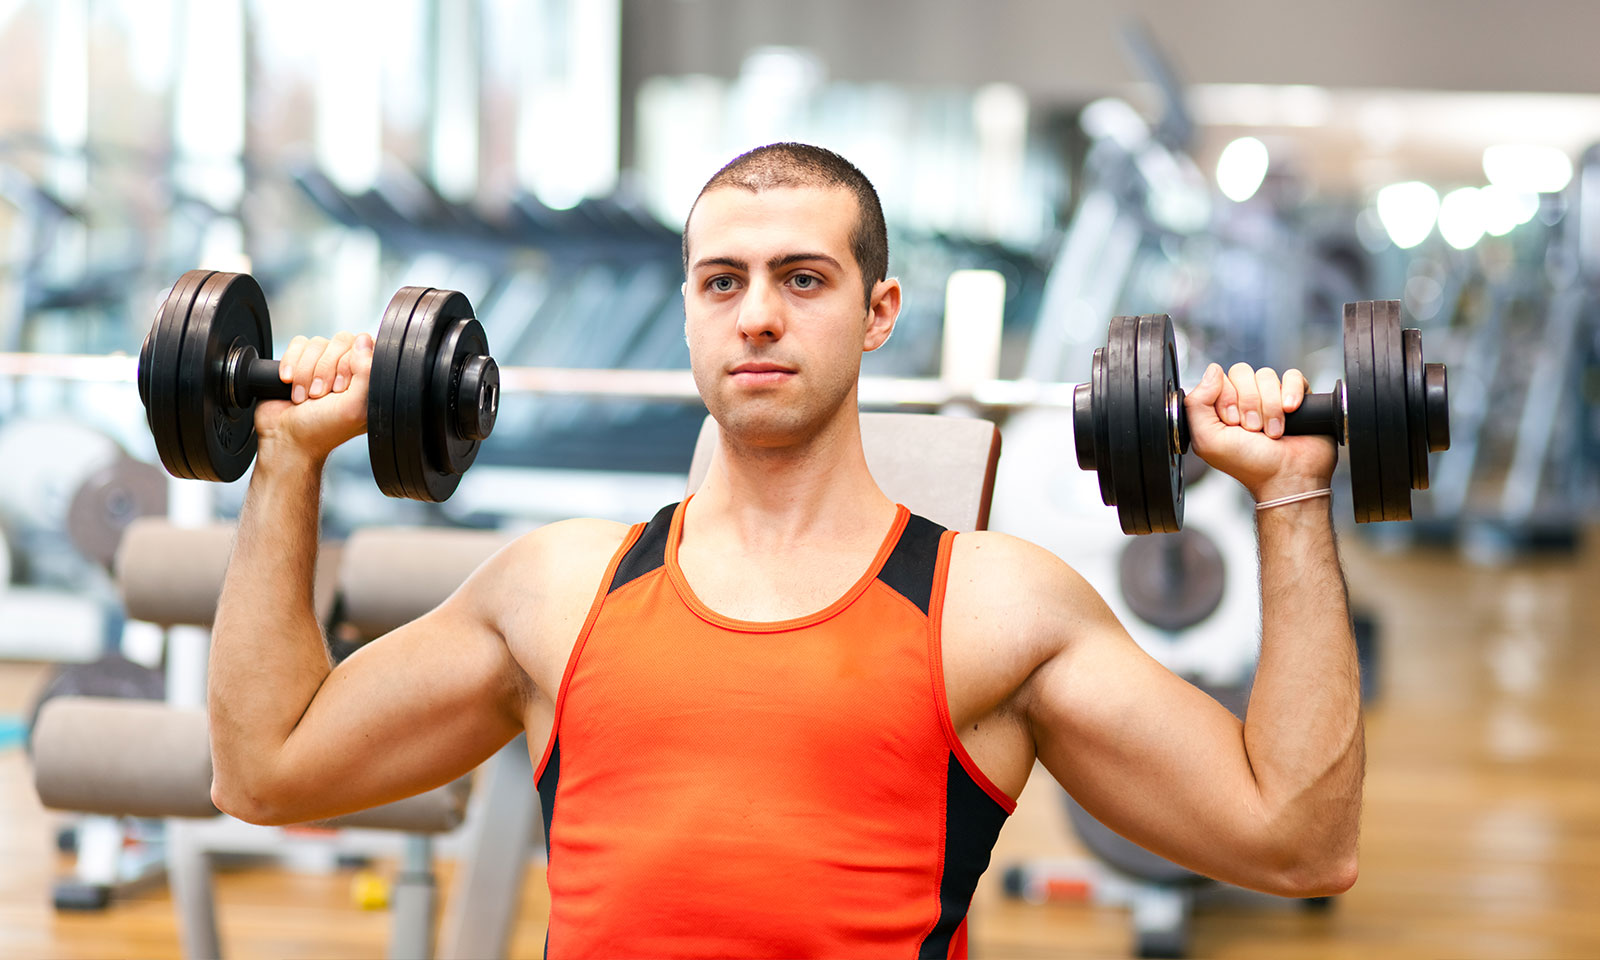 The Unspoken Laws Of The Gym